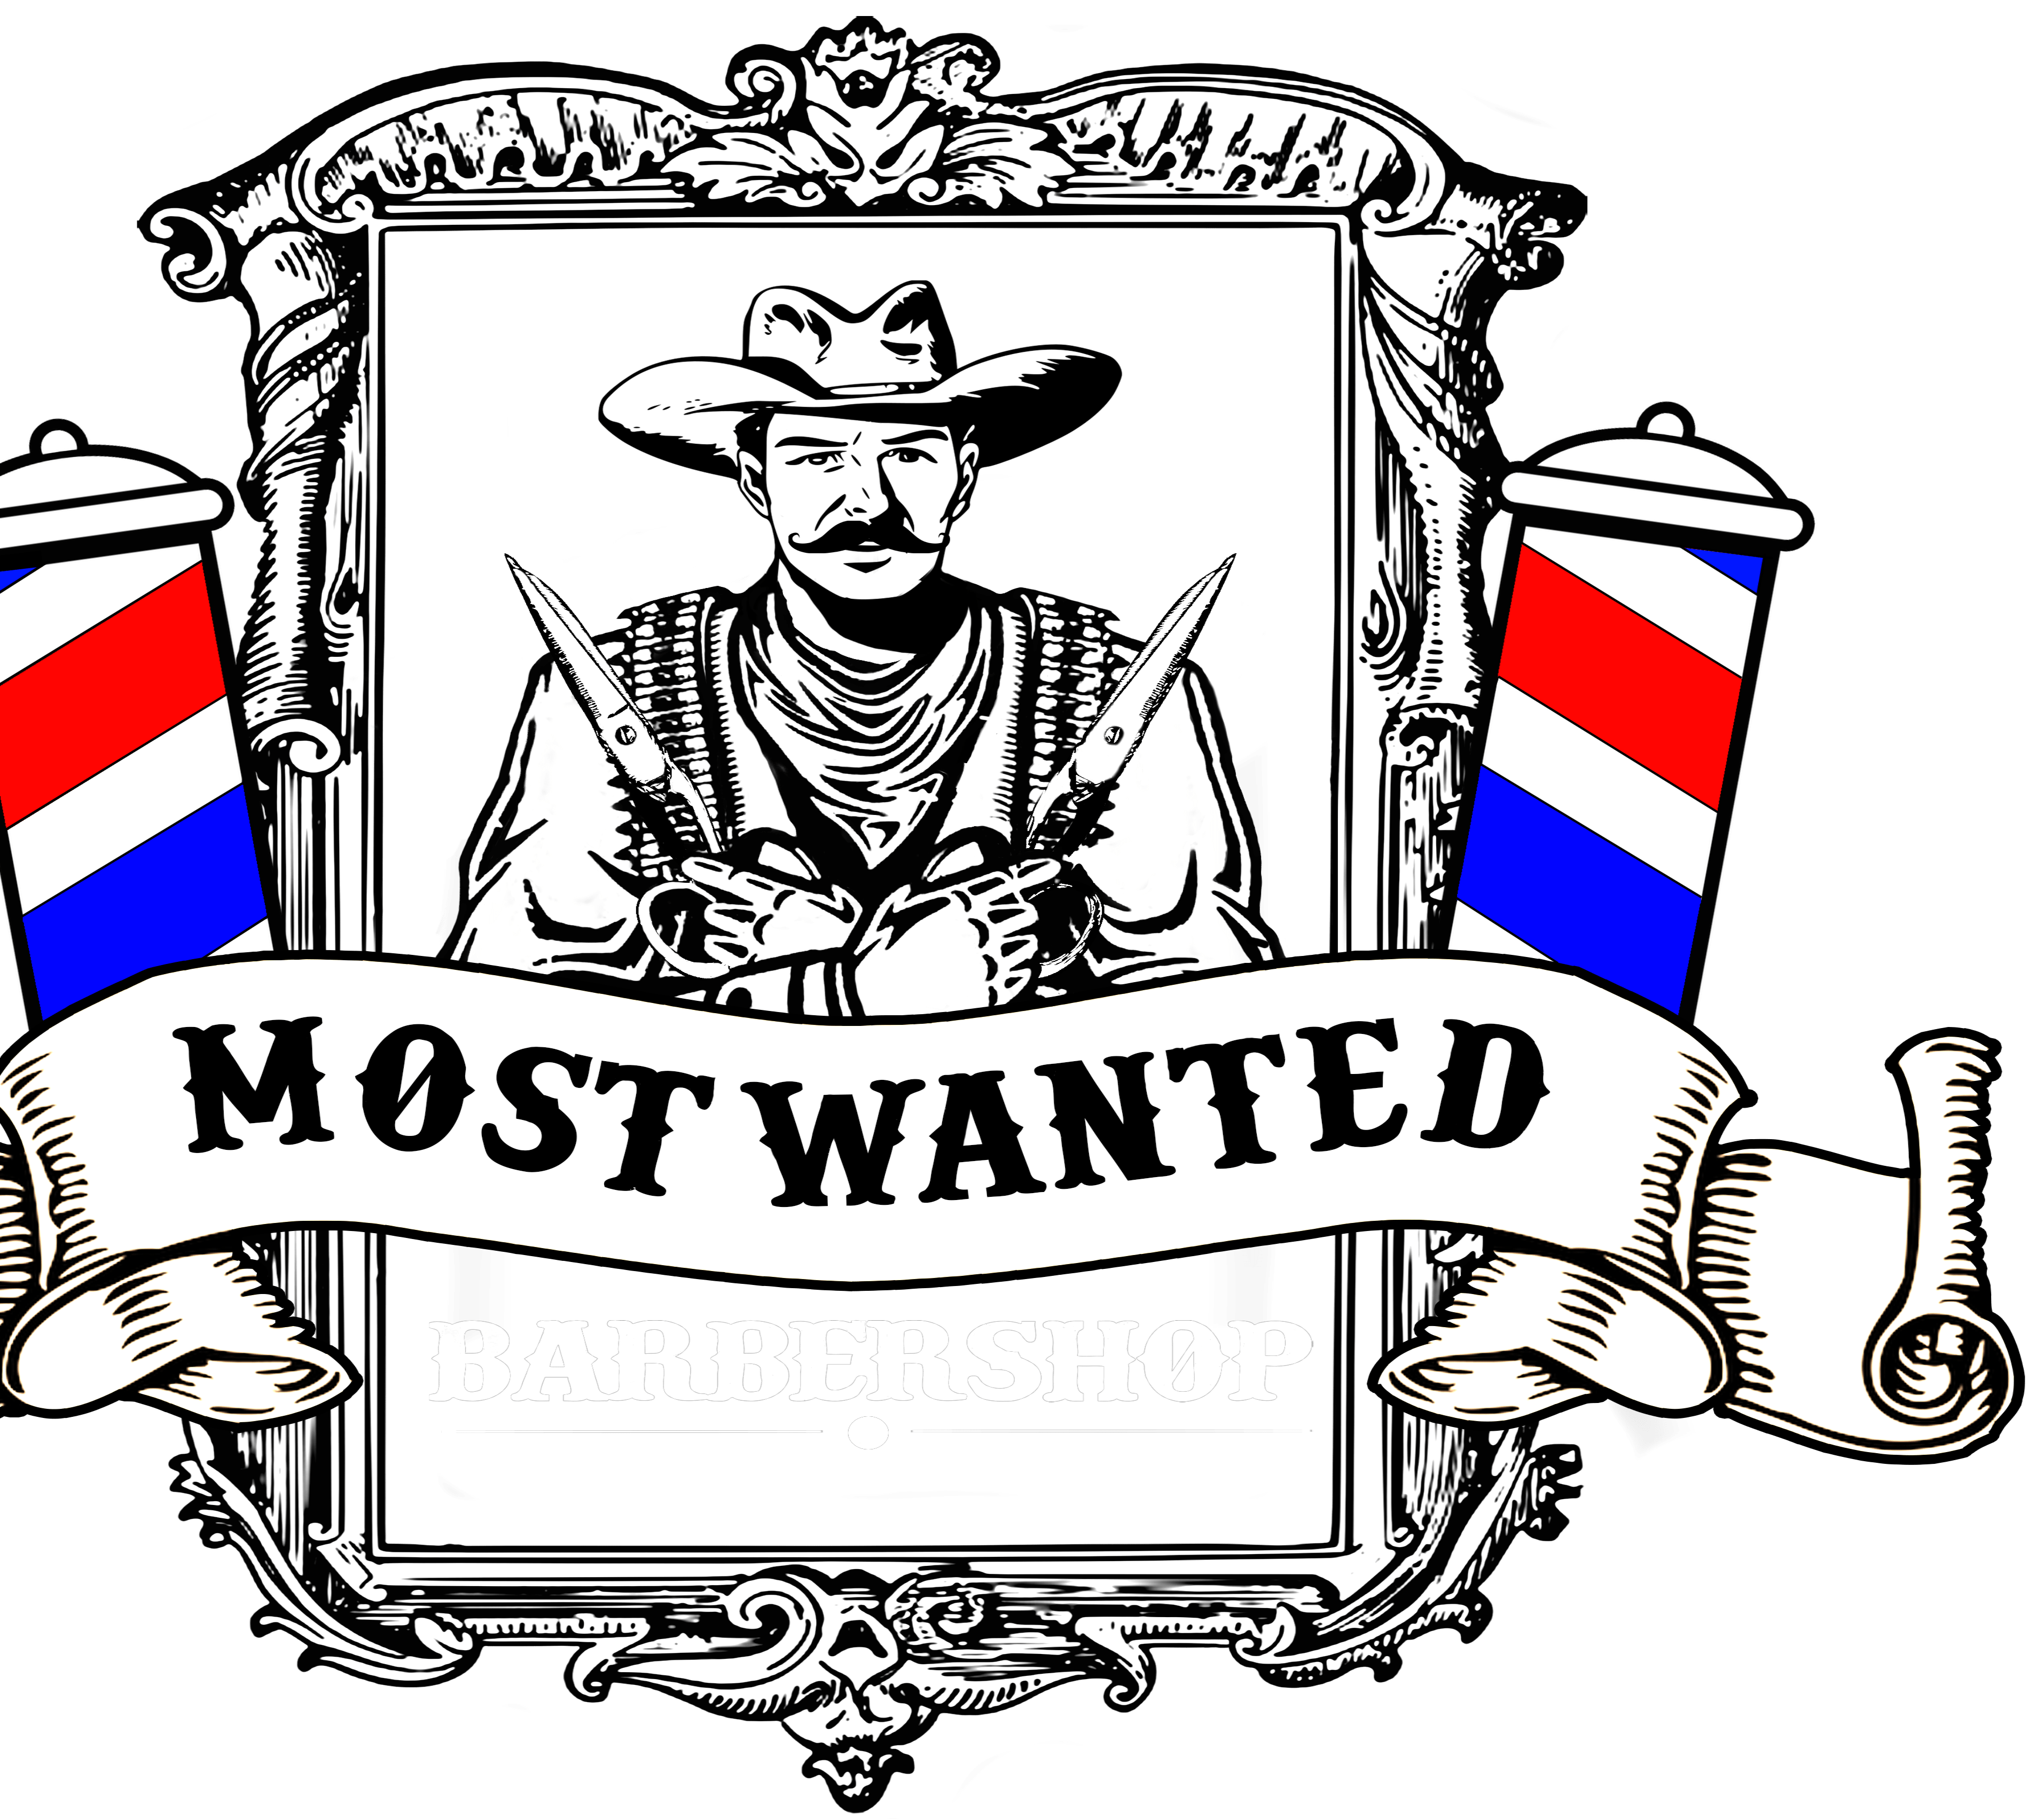 Most Wanted Barbershop